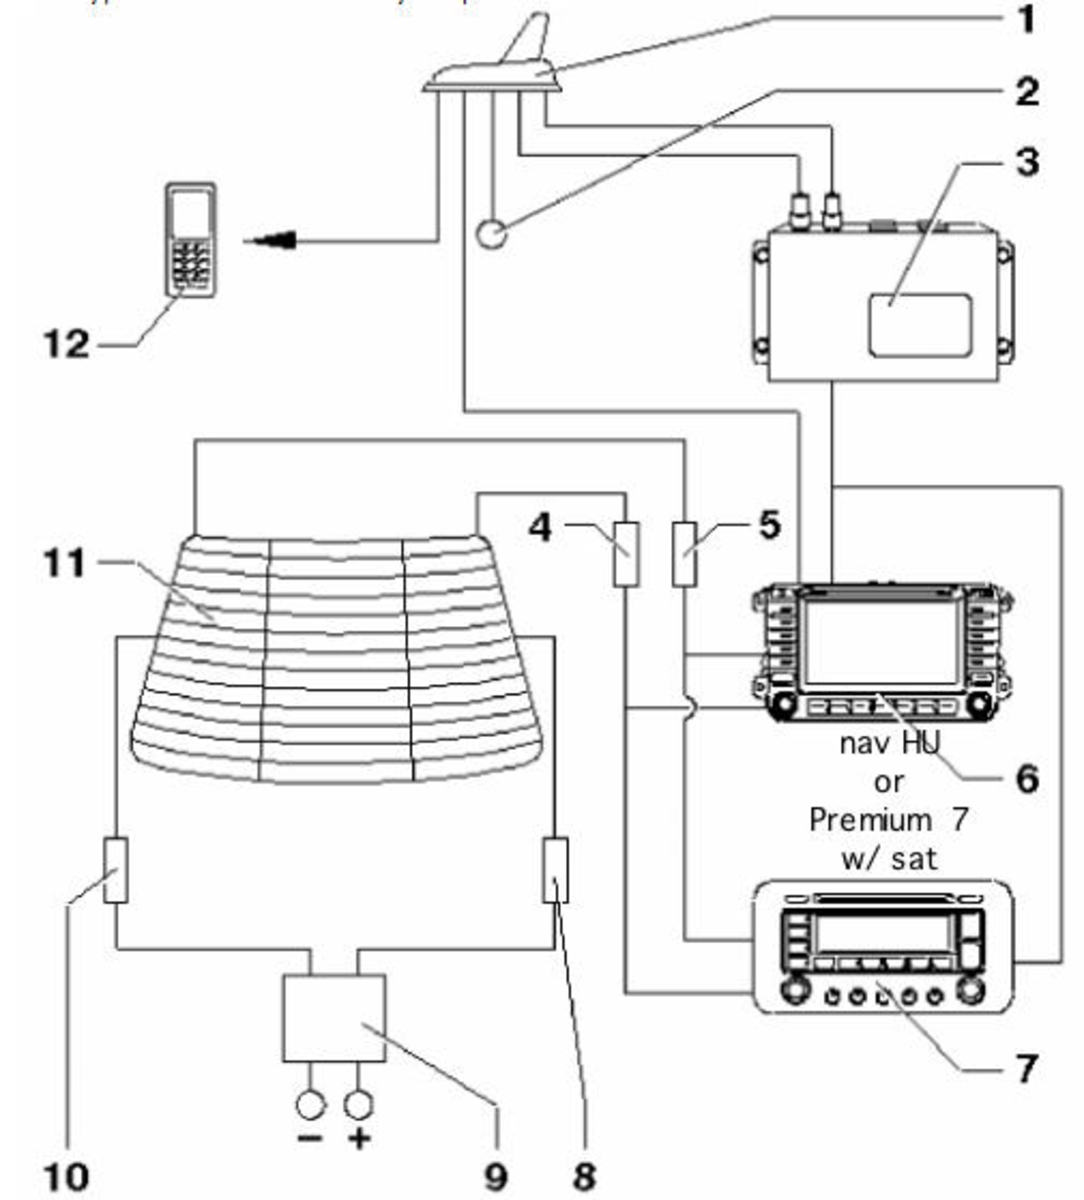 Schematic for 2006 Jetta with satellite radio